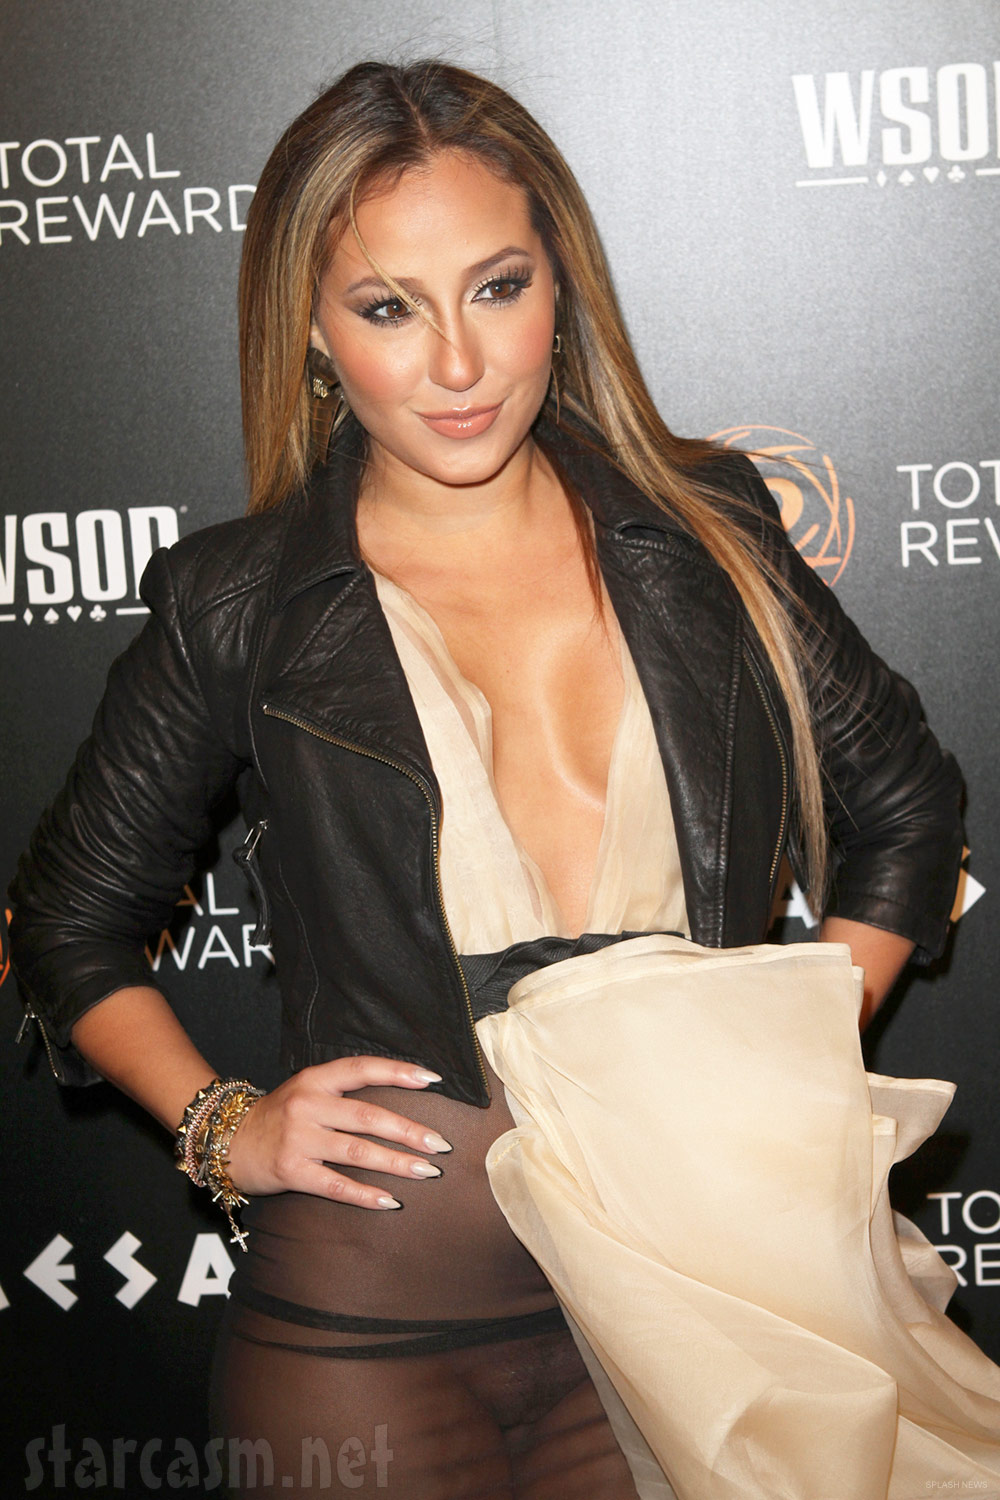 PHOTOS Adrienne Bailon suffers wardrobe malfunction, unleashes her ...